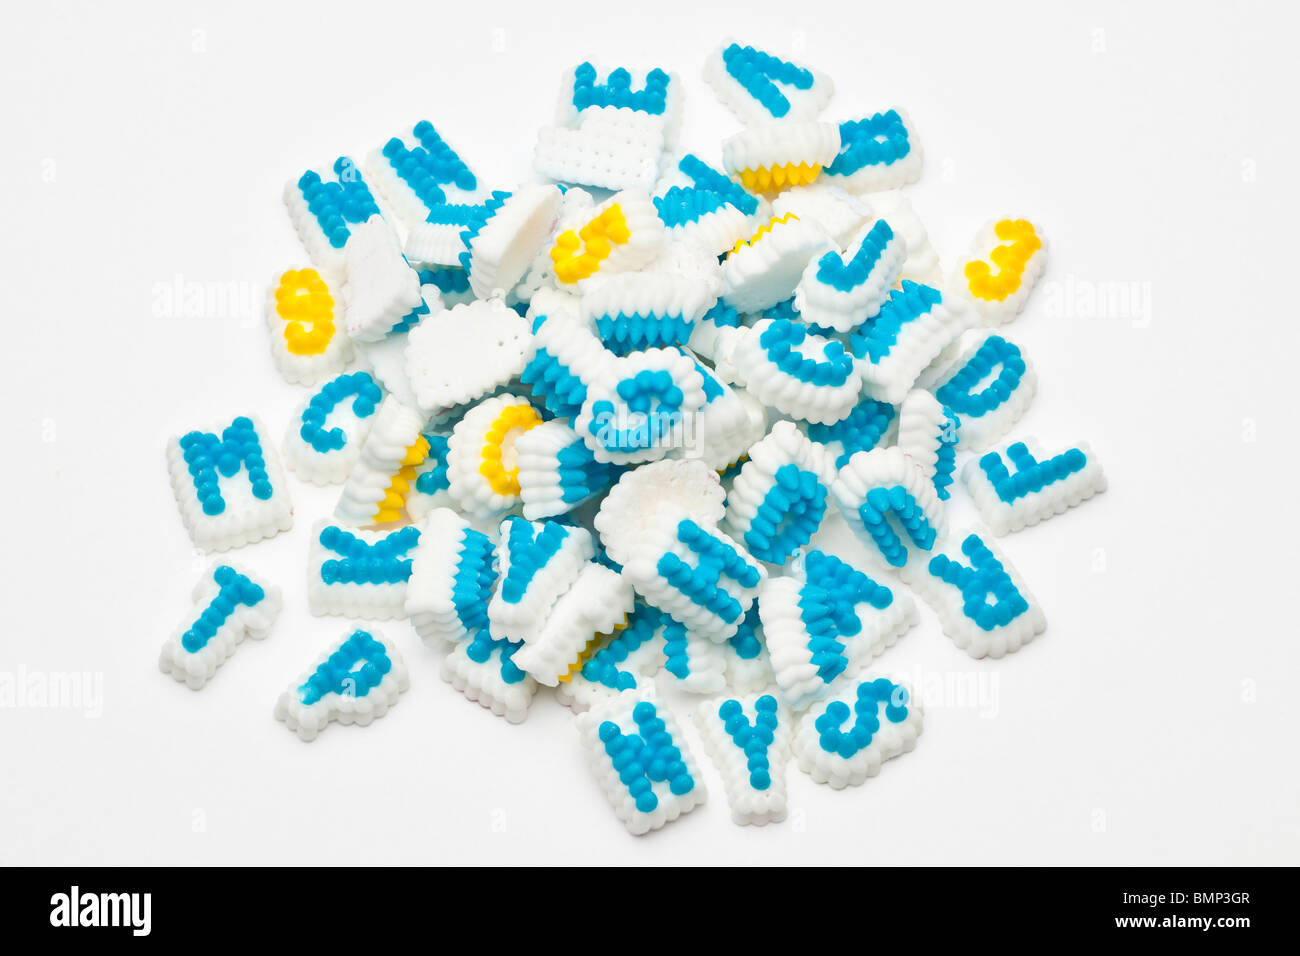 Pile of iced letters - Stock Image